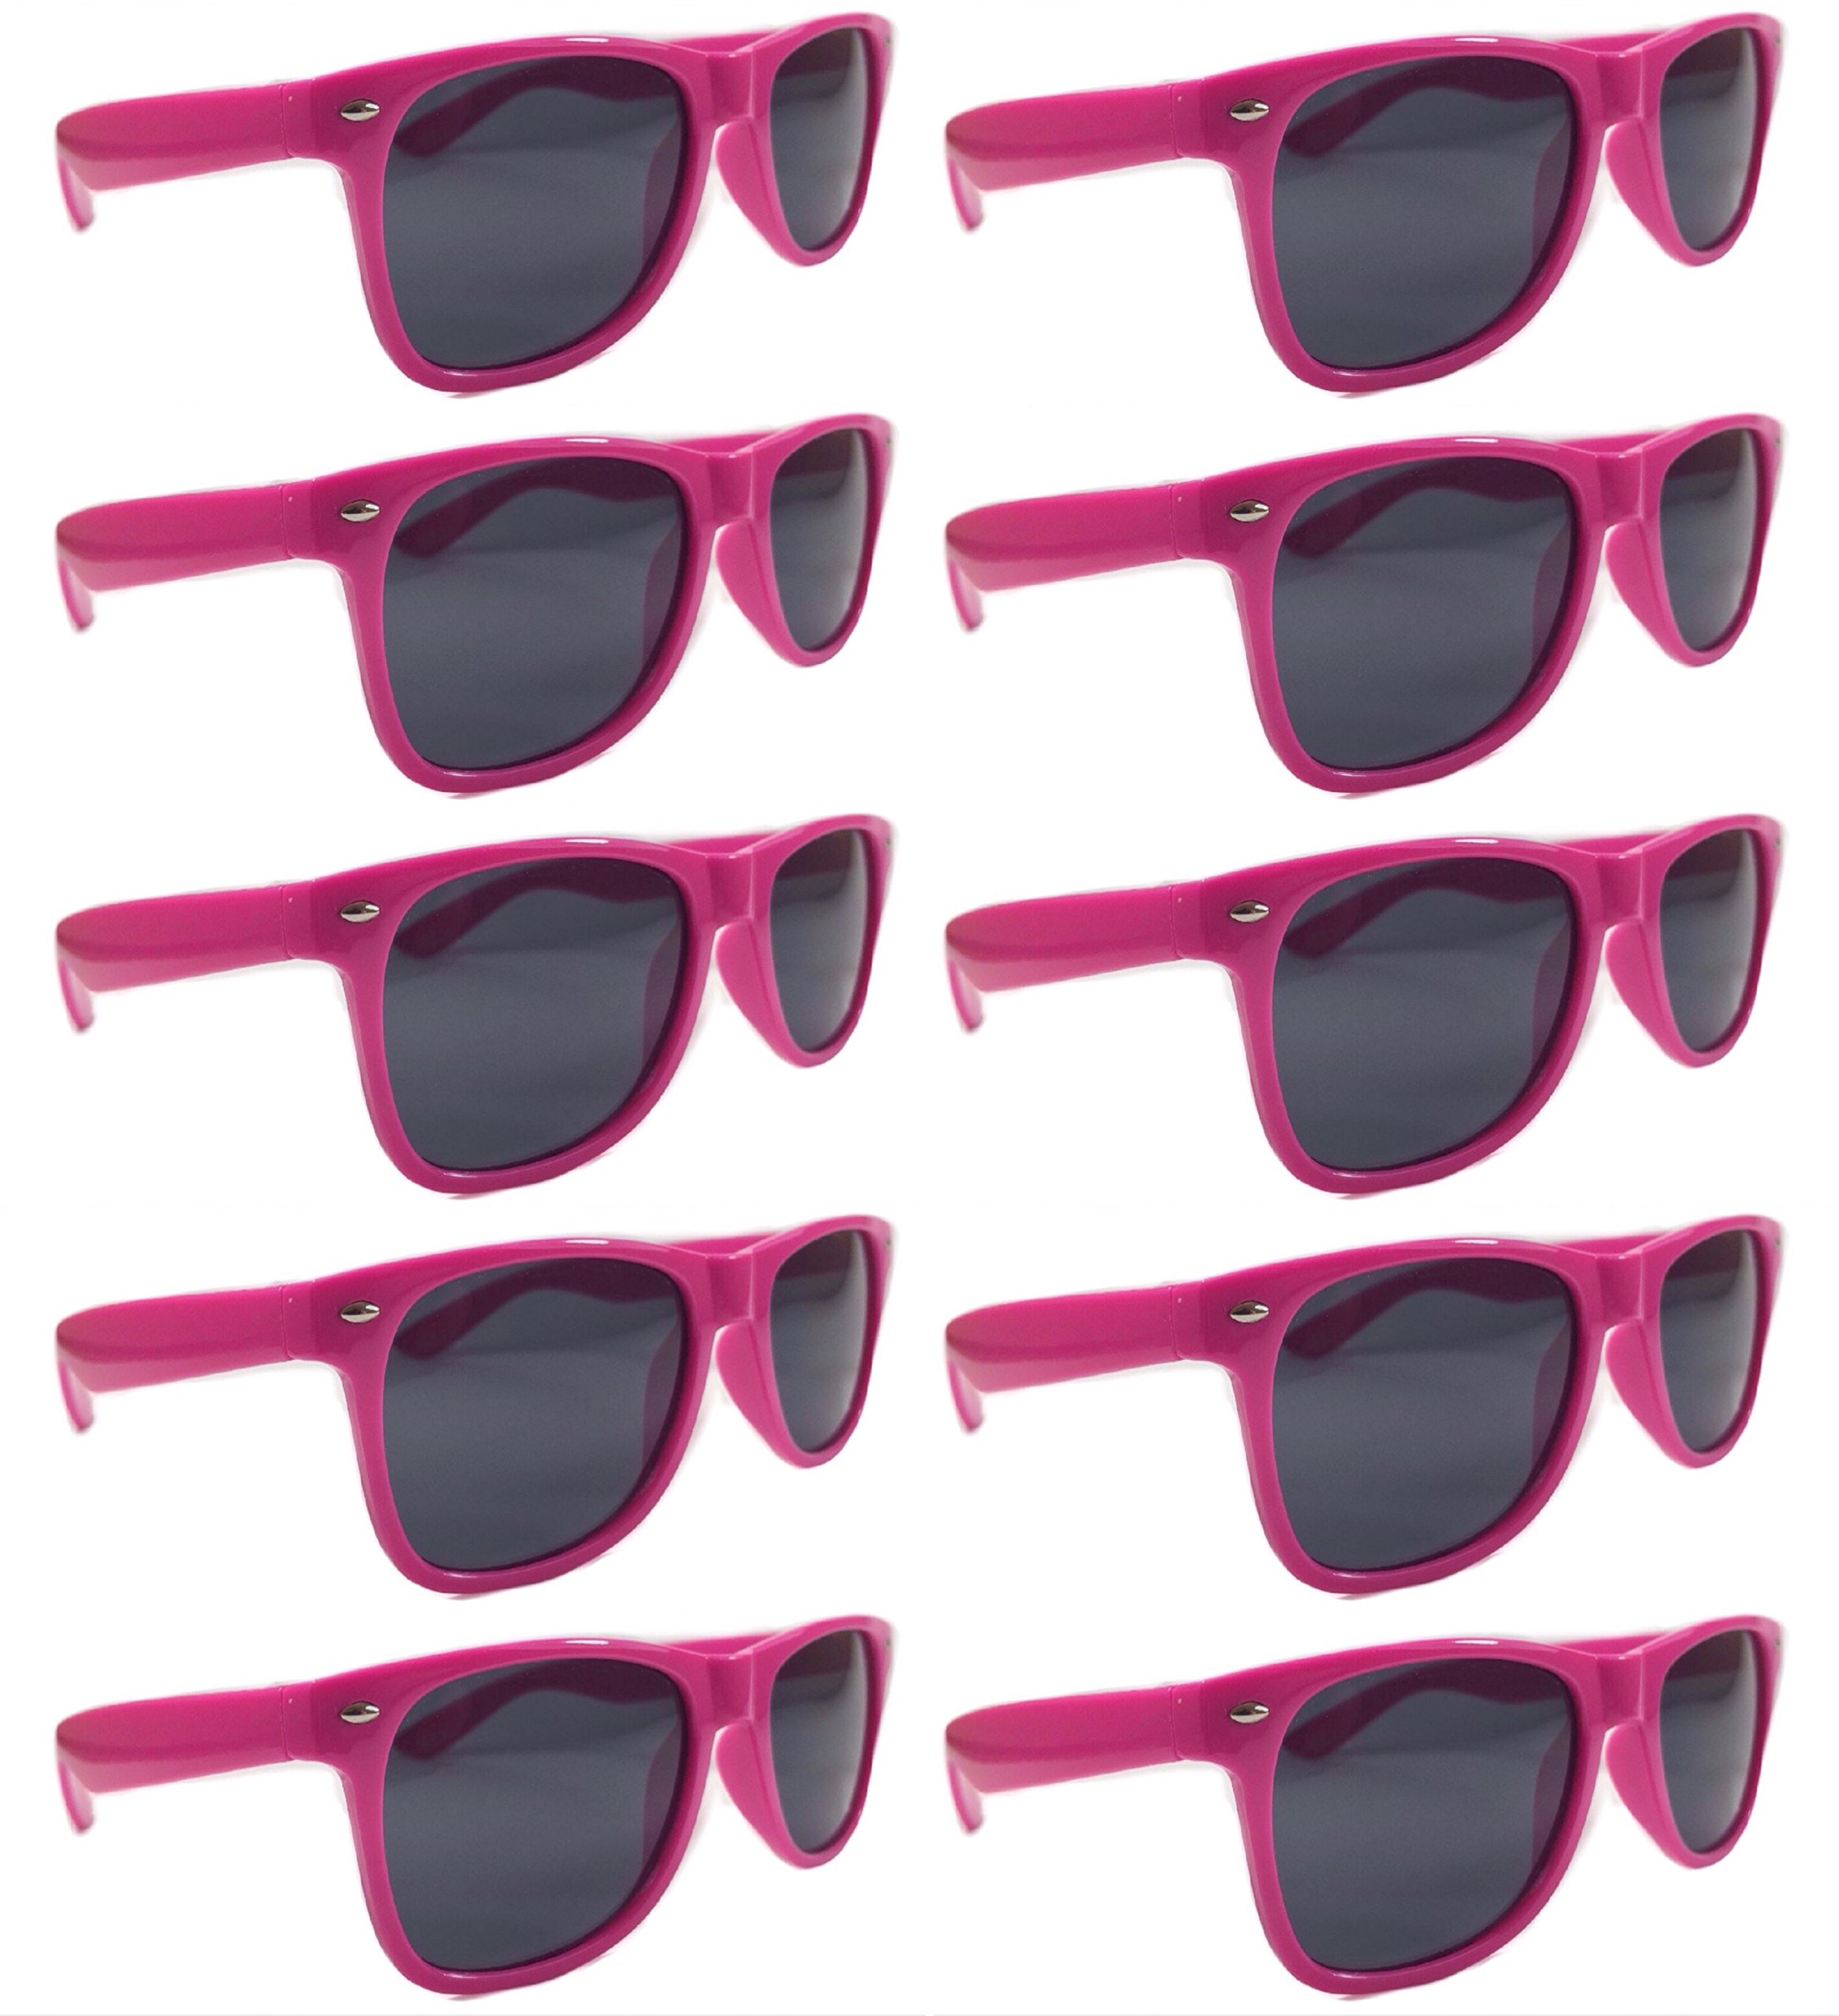 BULK UNISEX SUNGLASSES- Retro Neon Party Style (Weddings, Promotions, Birthdays) (Hot Pink)